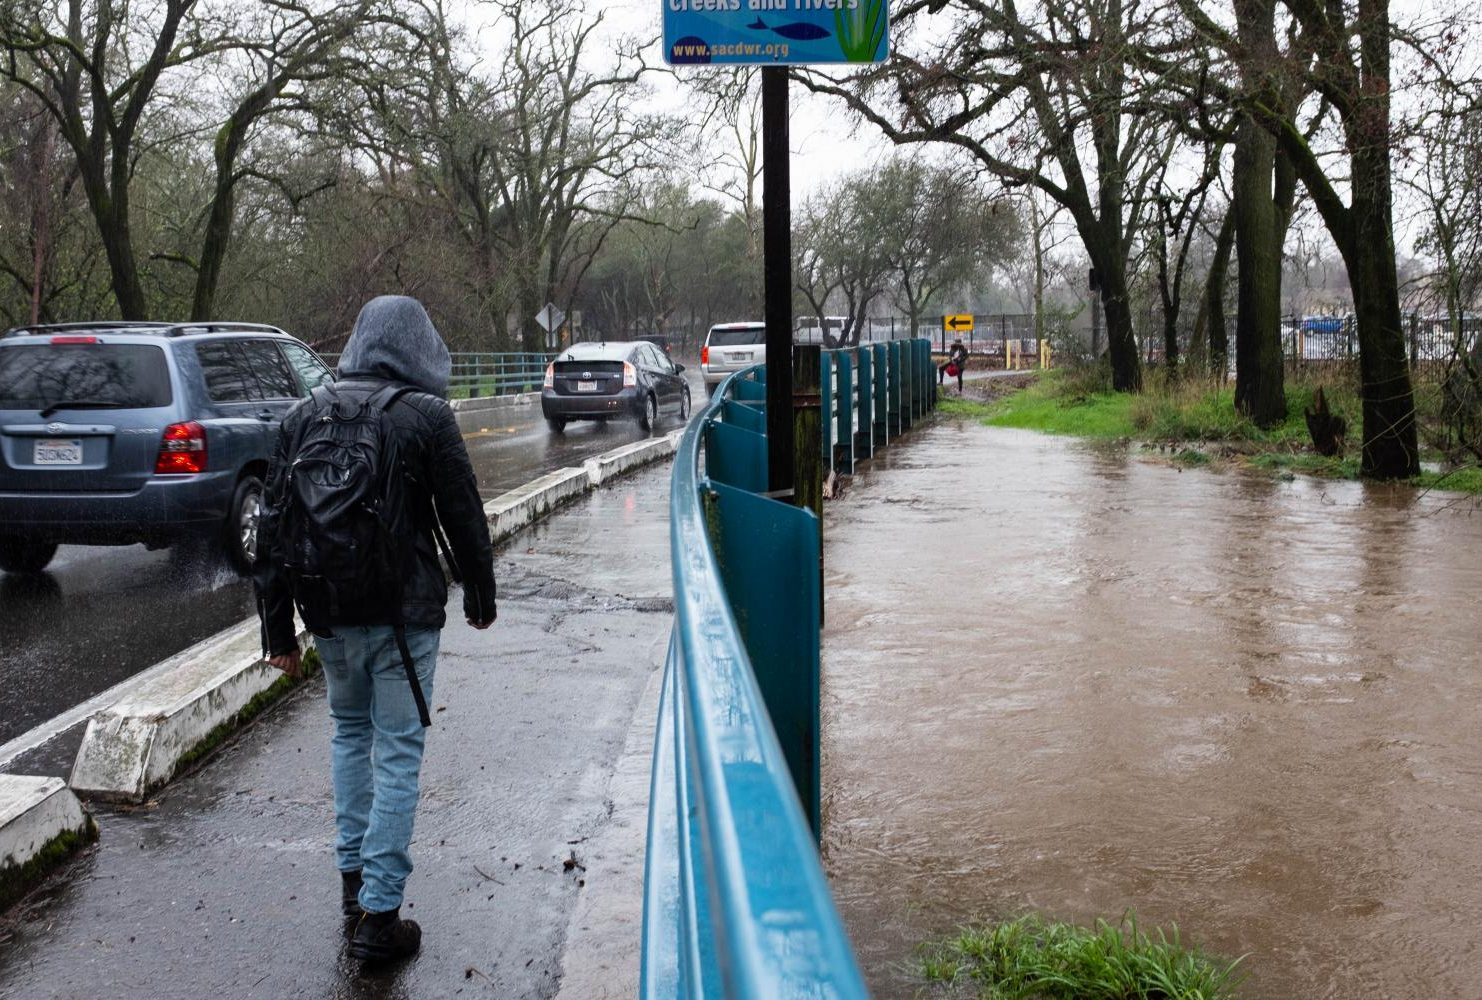 A student walks across the bridge over Arcade Creek as rain causes the creek to flood nearly over the ridge at American River College on Feb. 26, 2019. (Photo by Patrick Hyun Wilson)